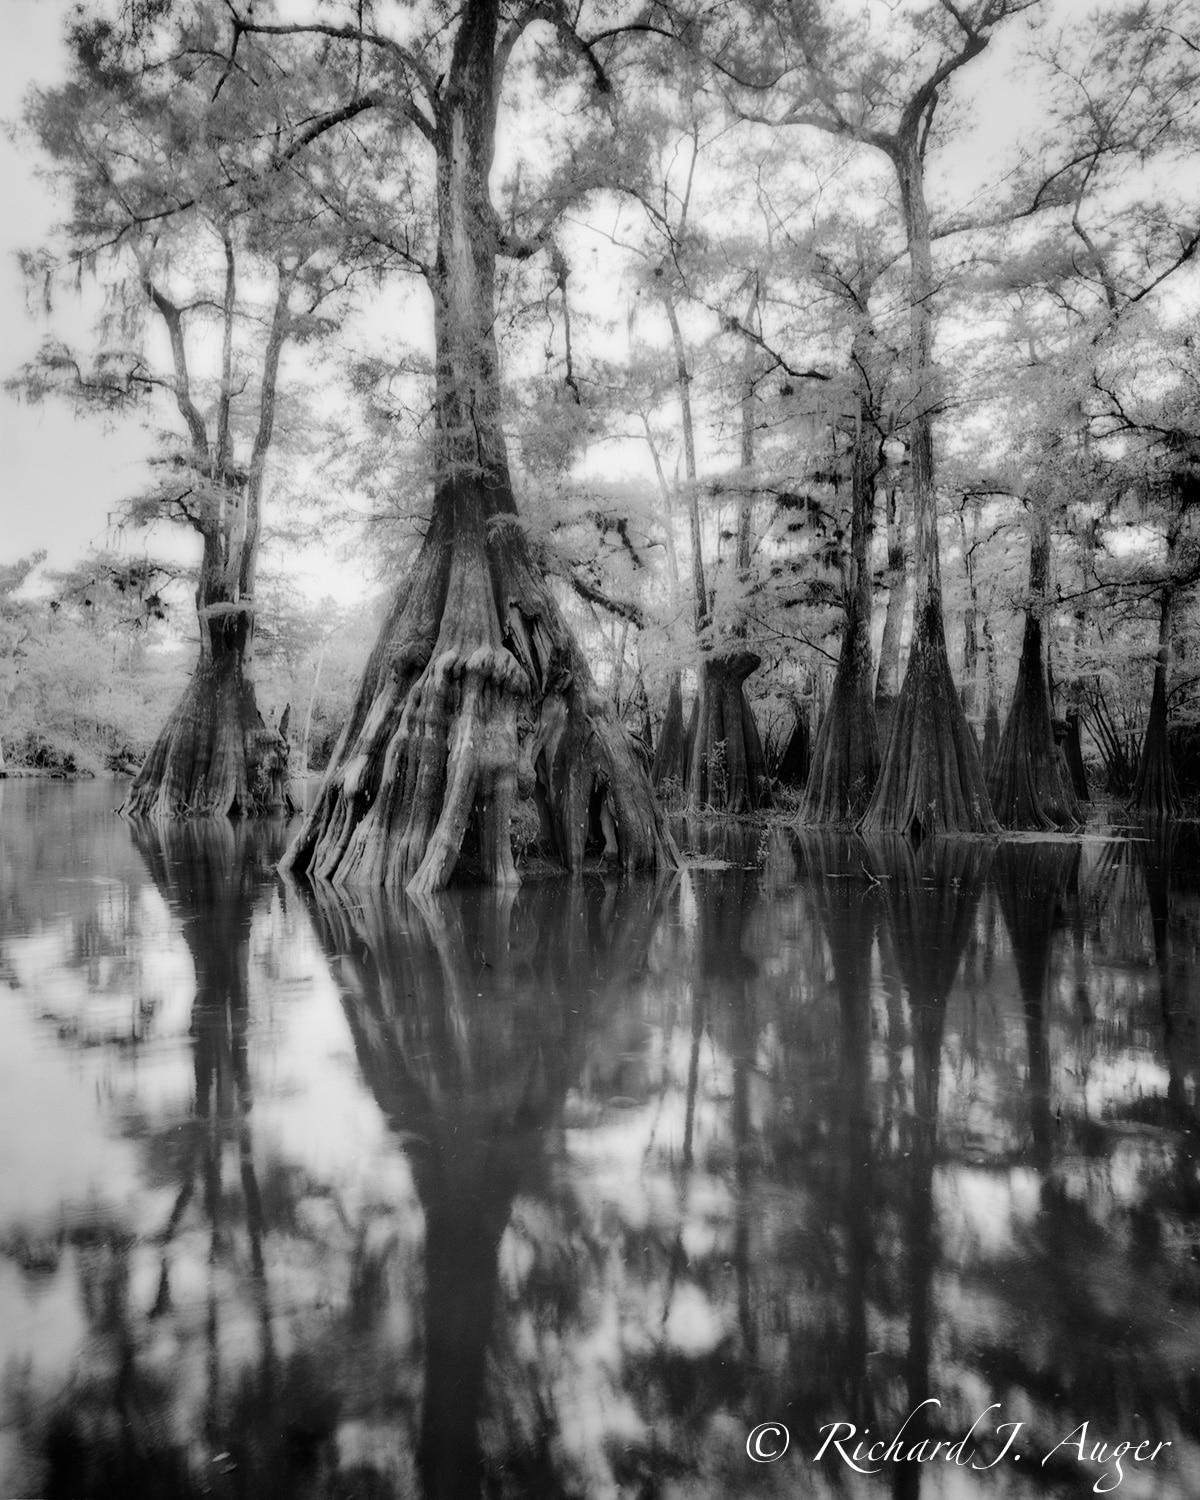 Suwannee River, Florida, Cypress, Water, Swamp, Black and White, Monochrom, Landscape, Photograph, Photogapher, Photo, Nature